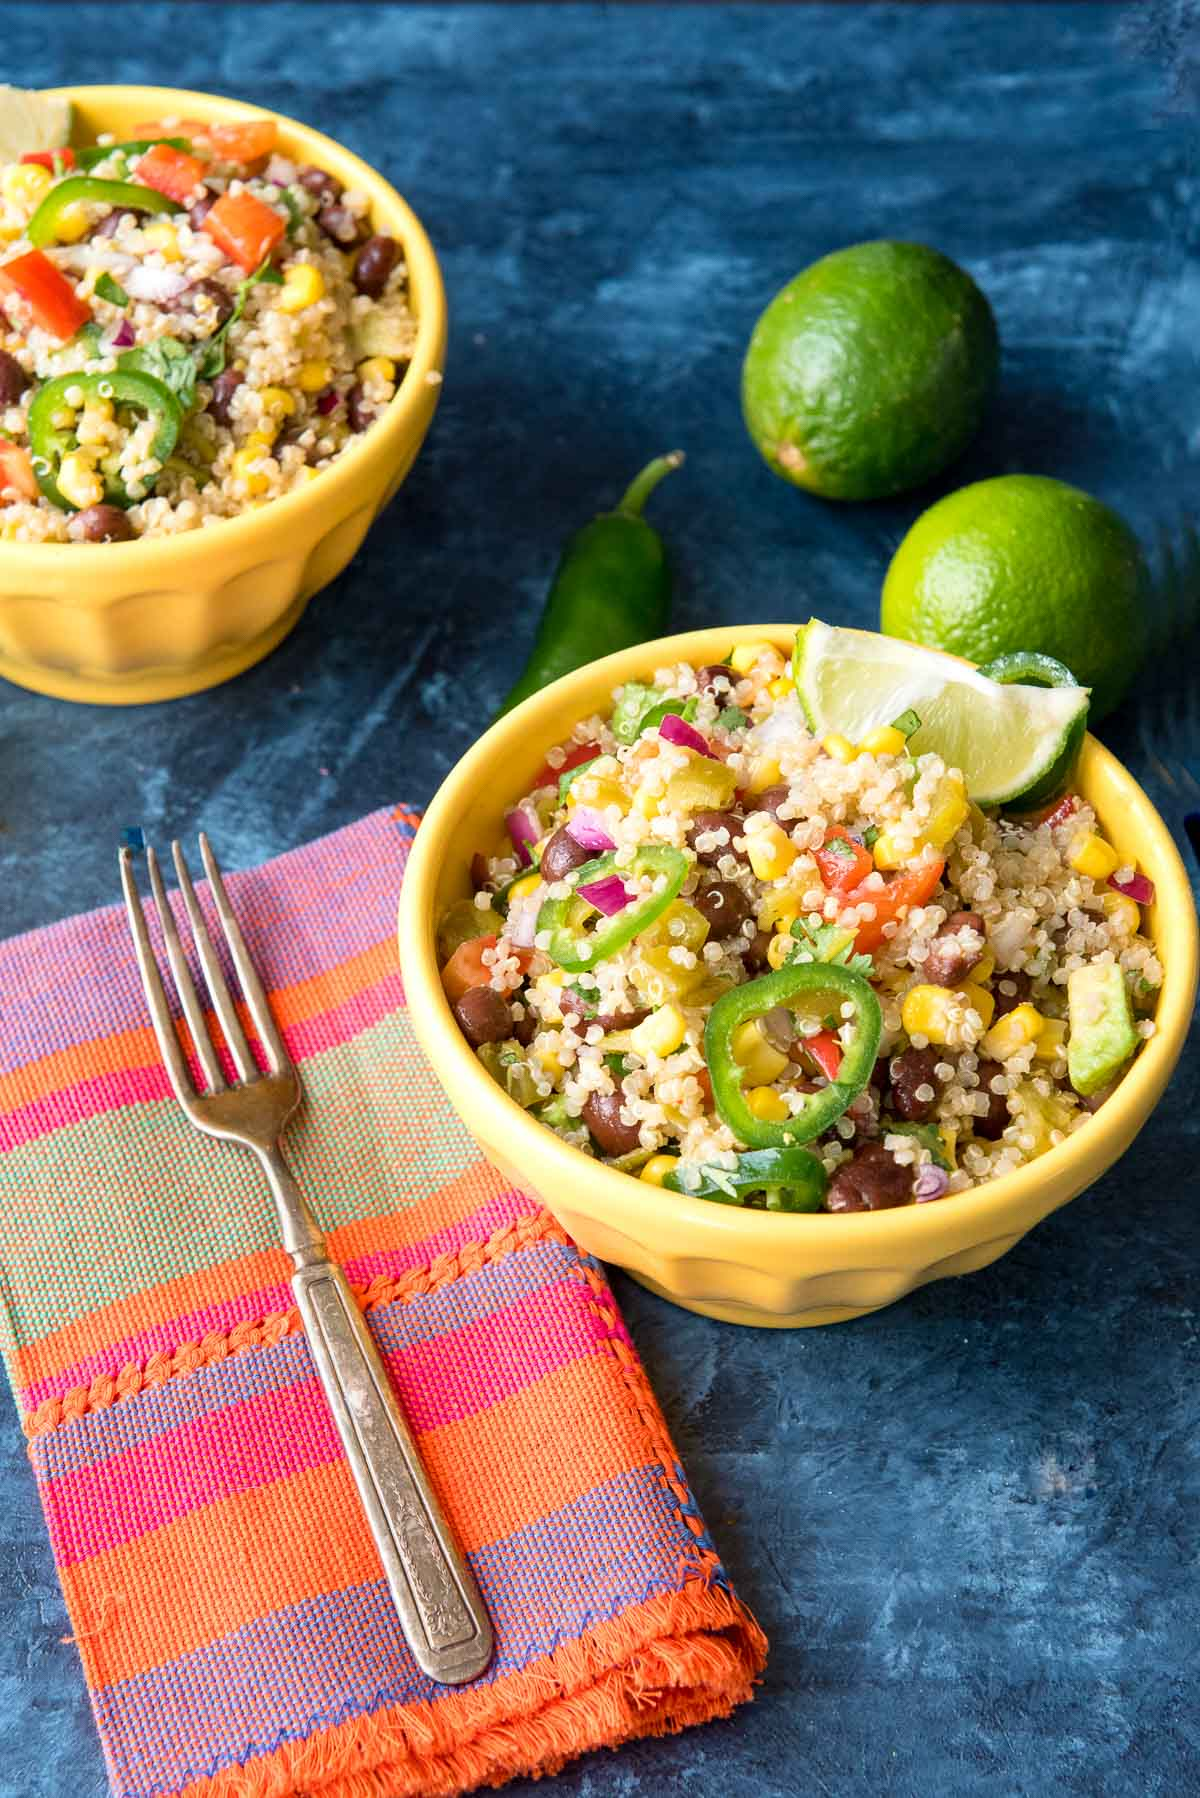 Mexican quinoa in yellow bowl side